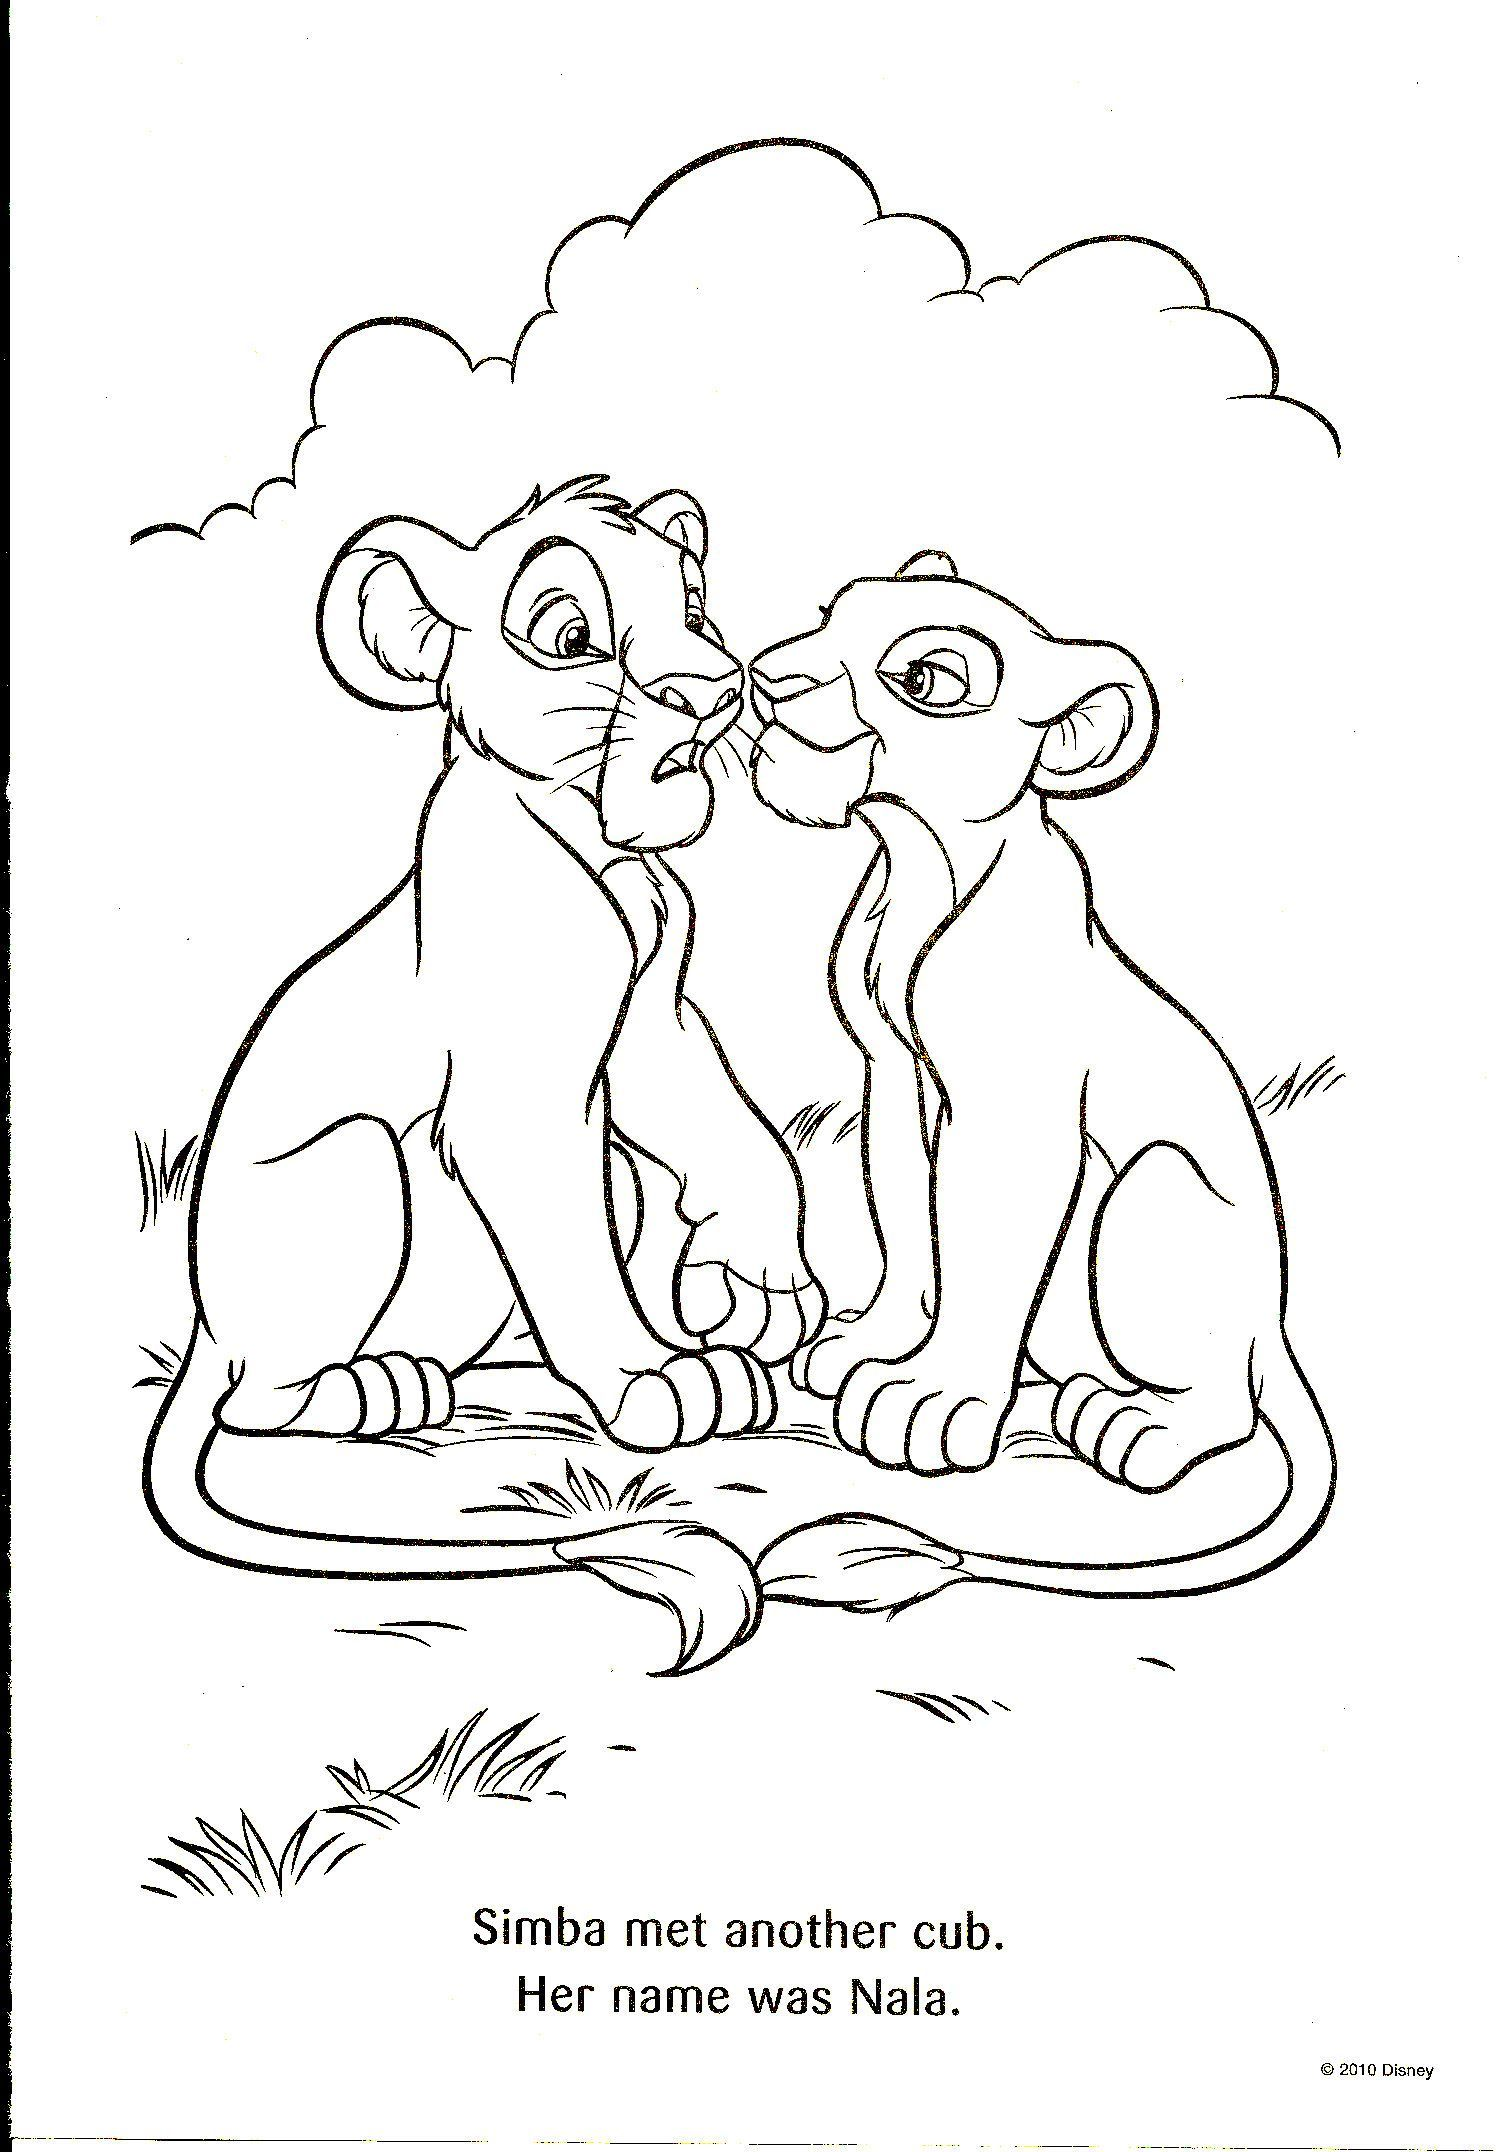 Pin By Carla Sluiter On Coloring Pages And Fun Images To Draw Lion Coloring Pages King Coloring Book Coloring Books